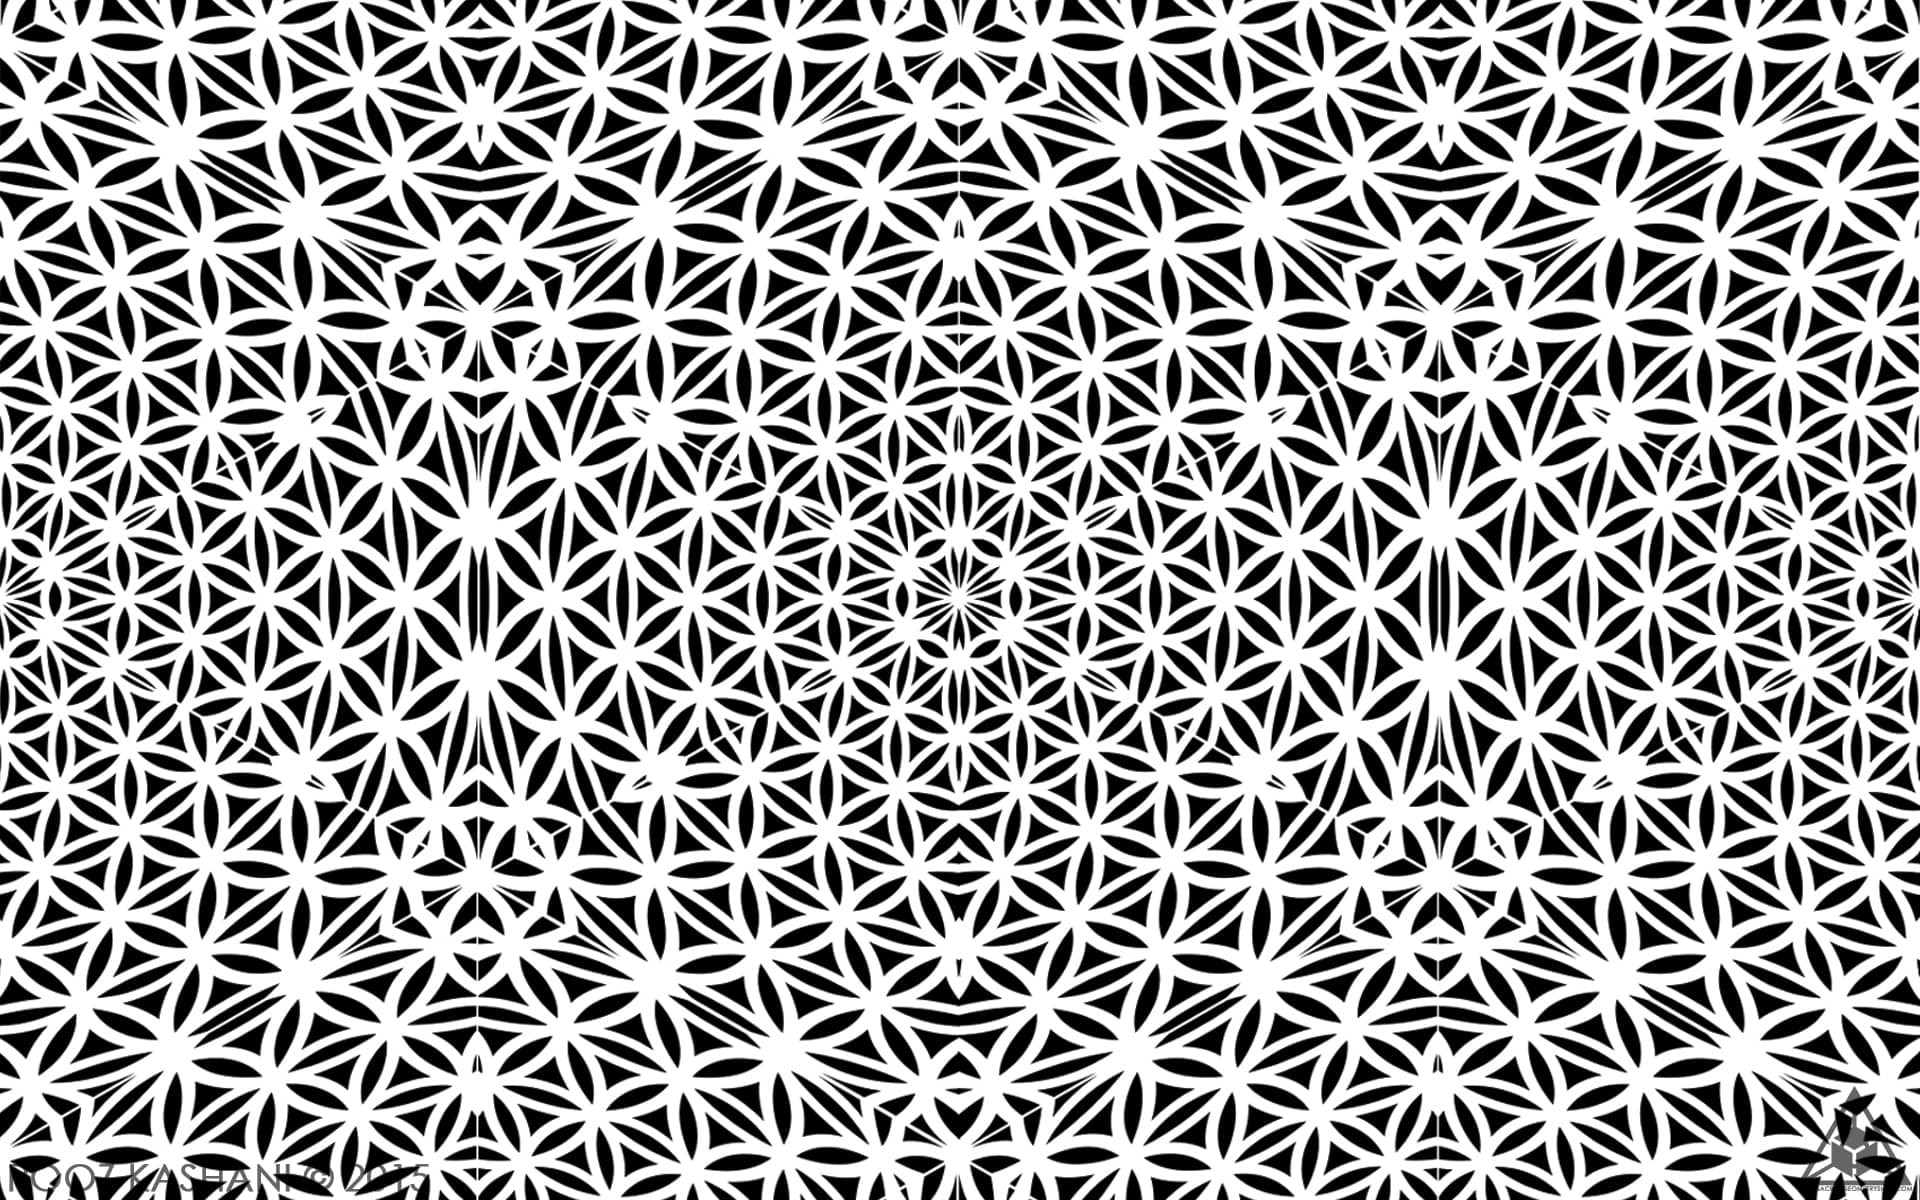 1920x1200 FLOWER OF LIFE WALLPAPER (WIDESCREEN)